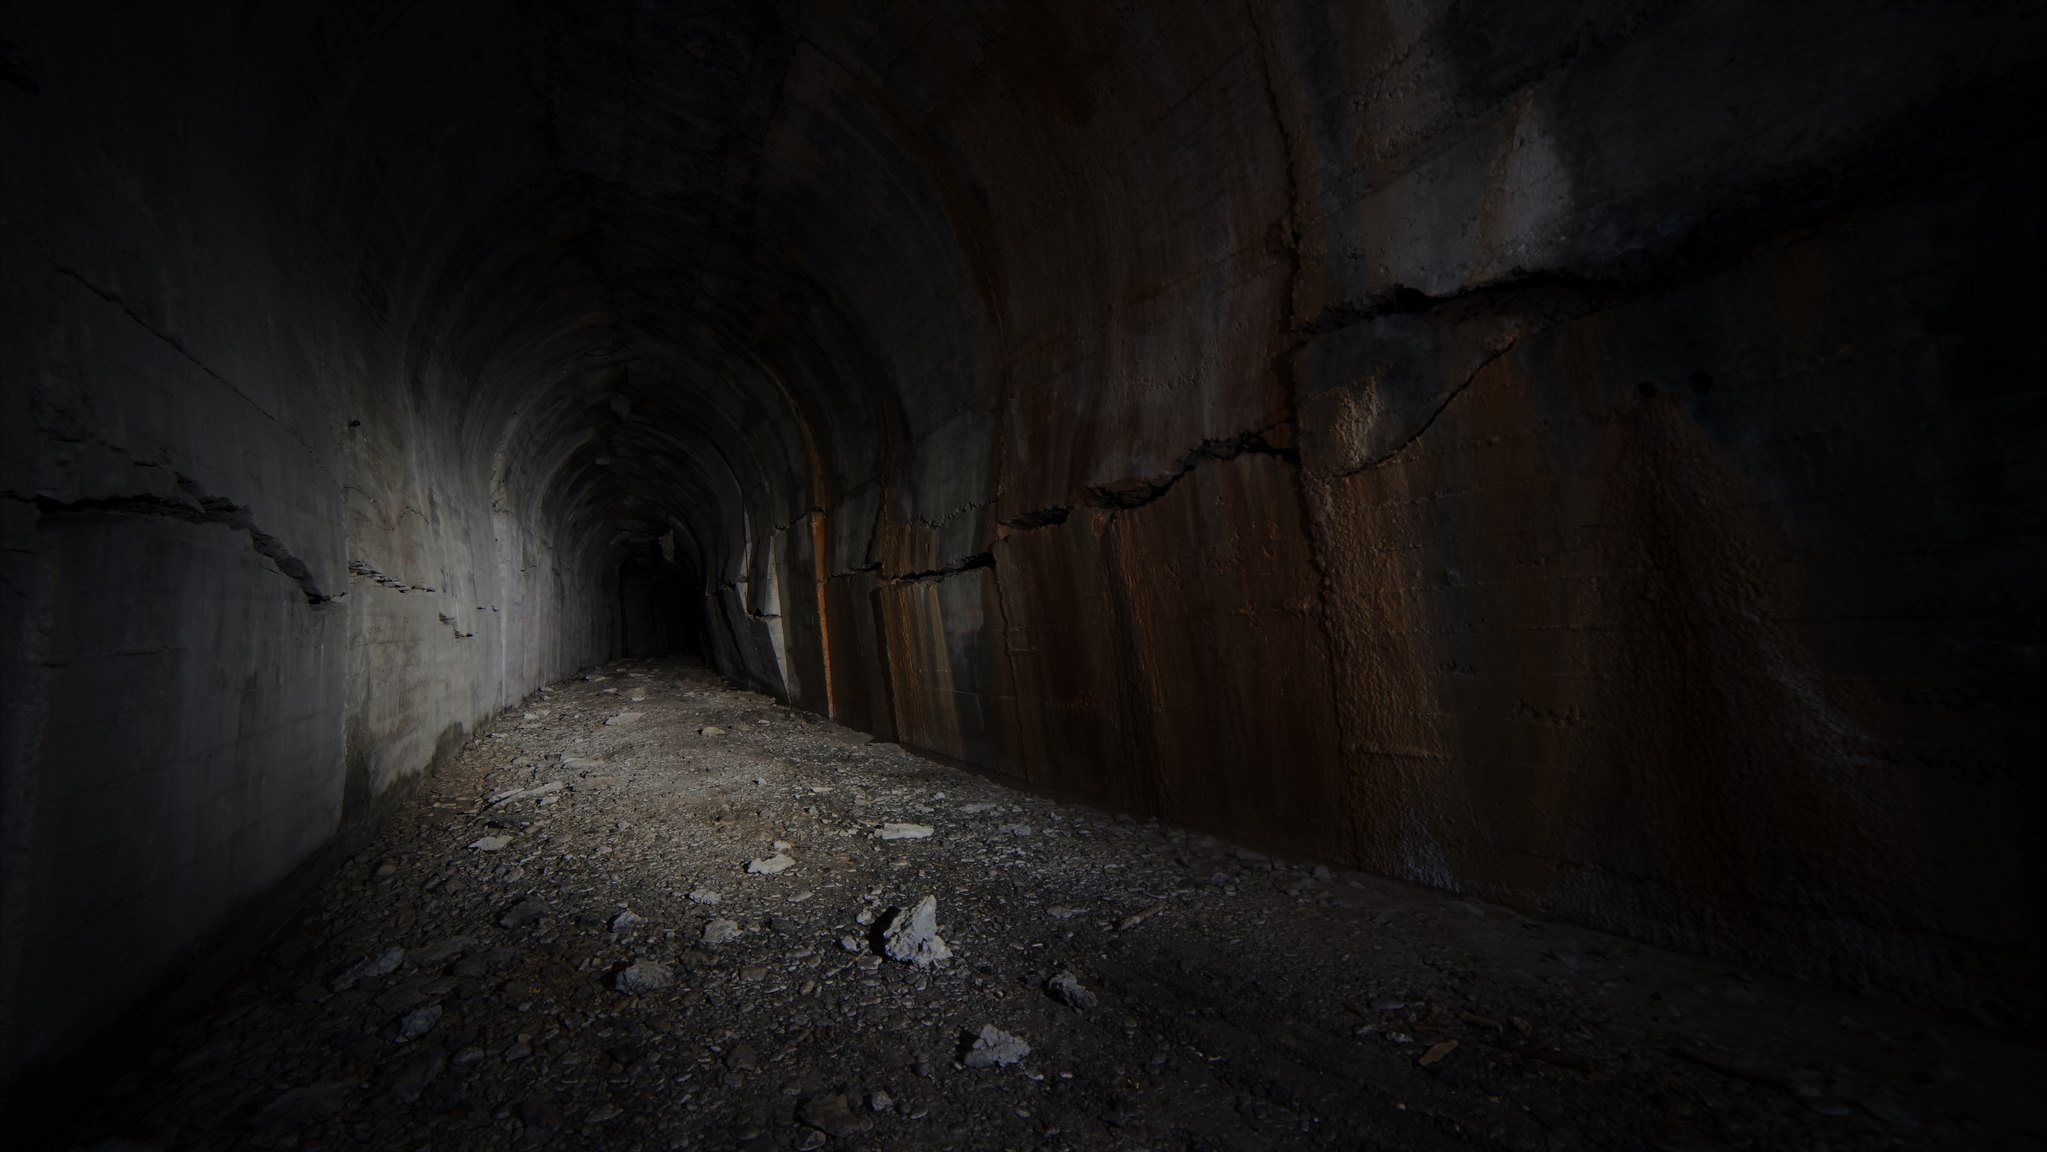 Abandoned collapsing tunnel